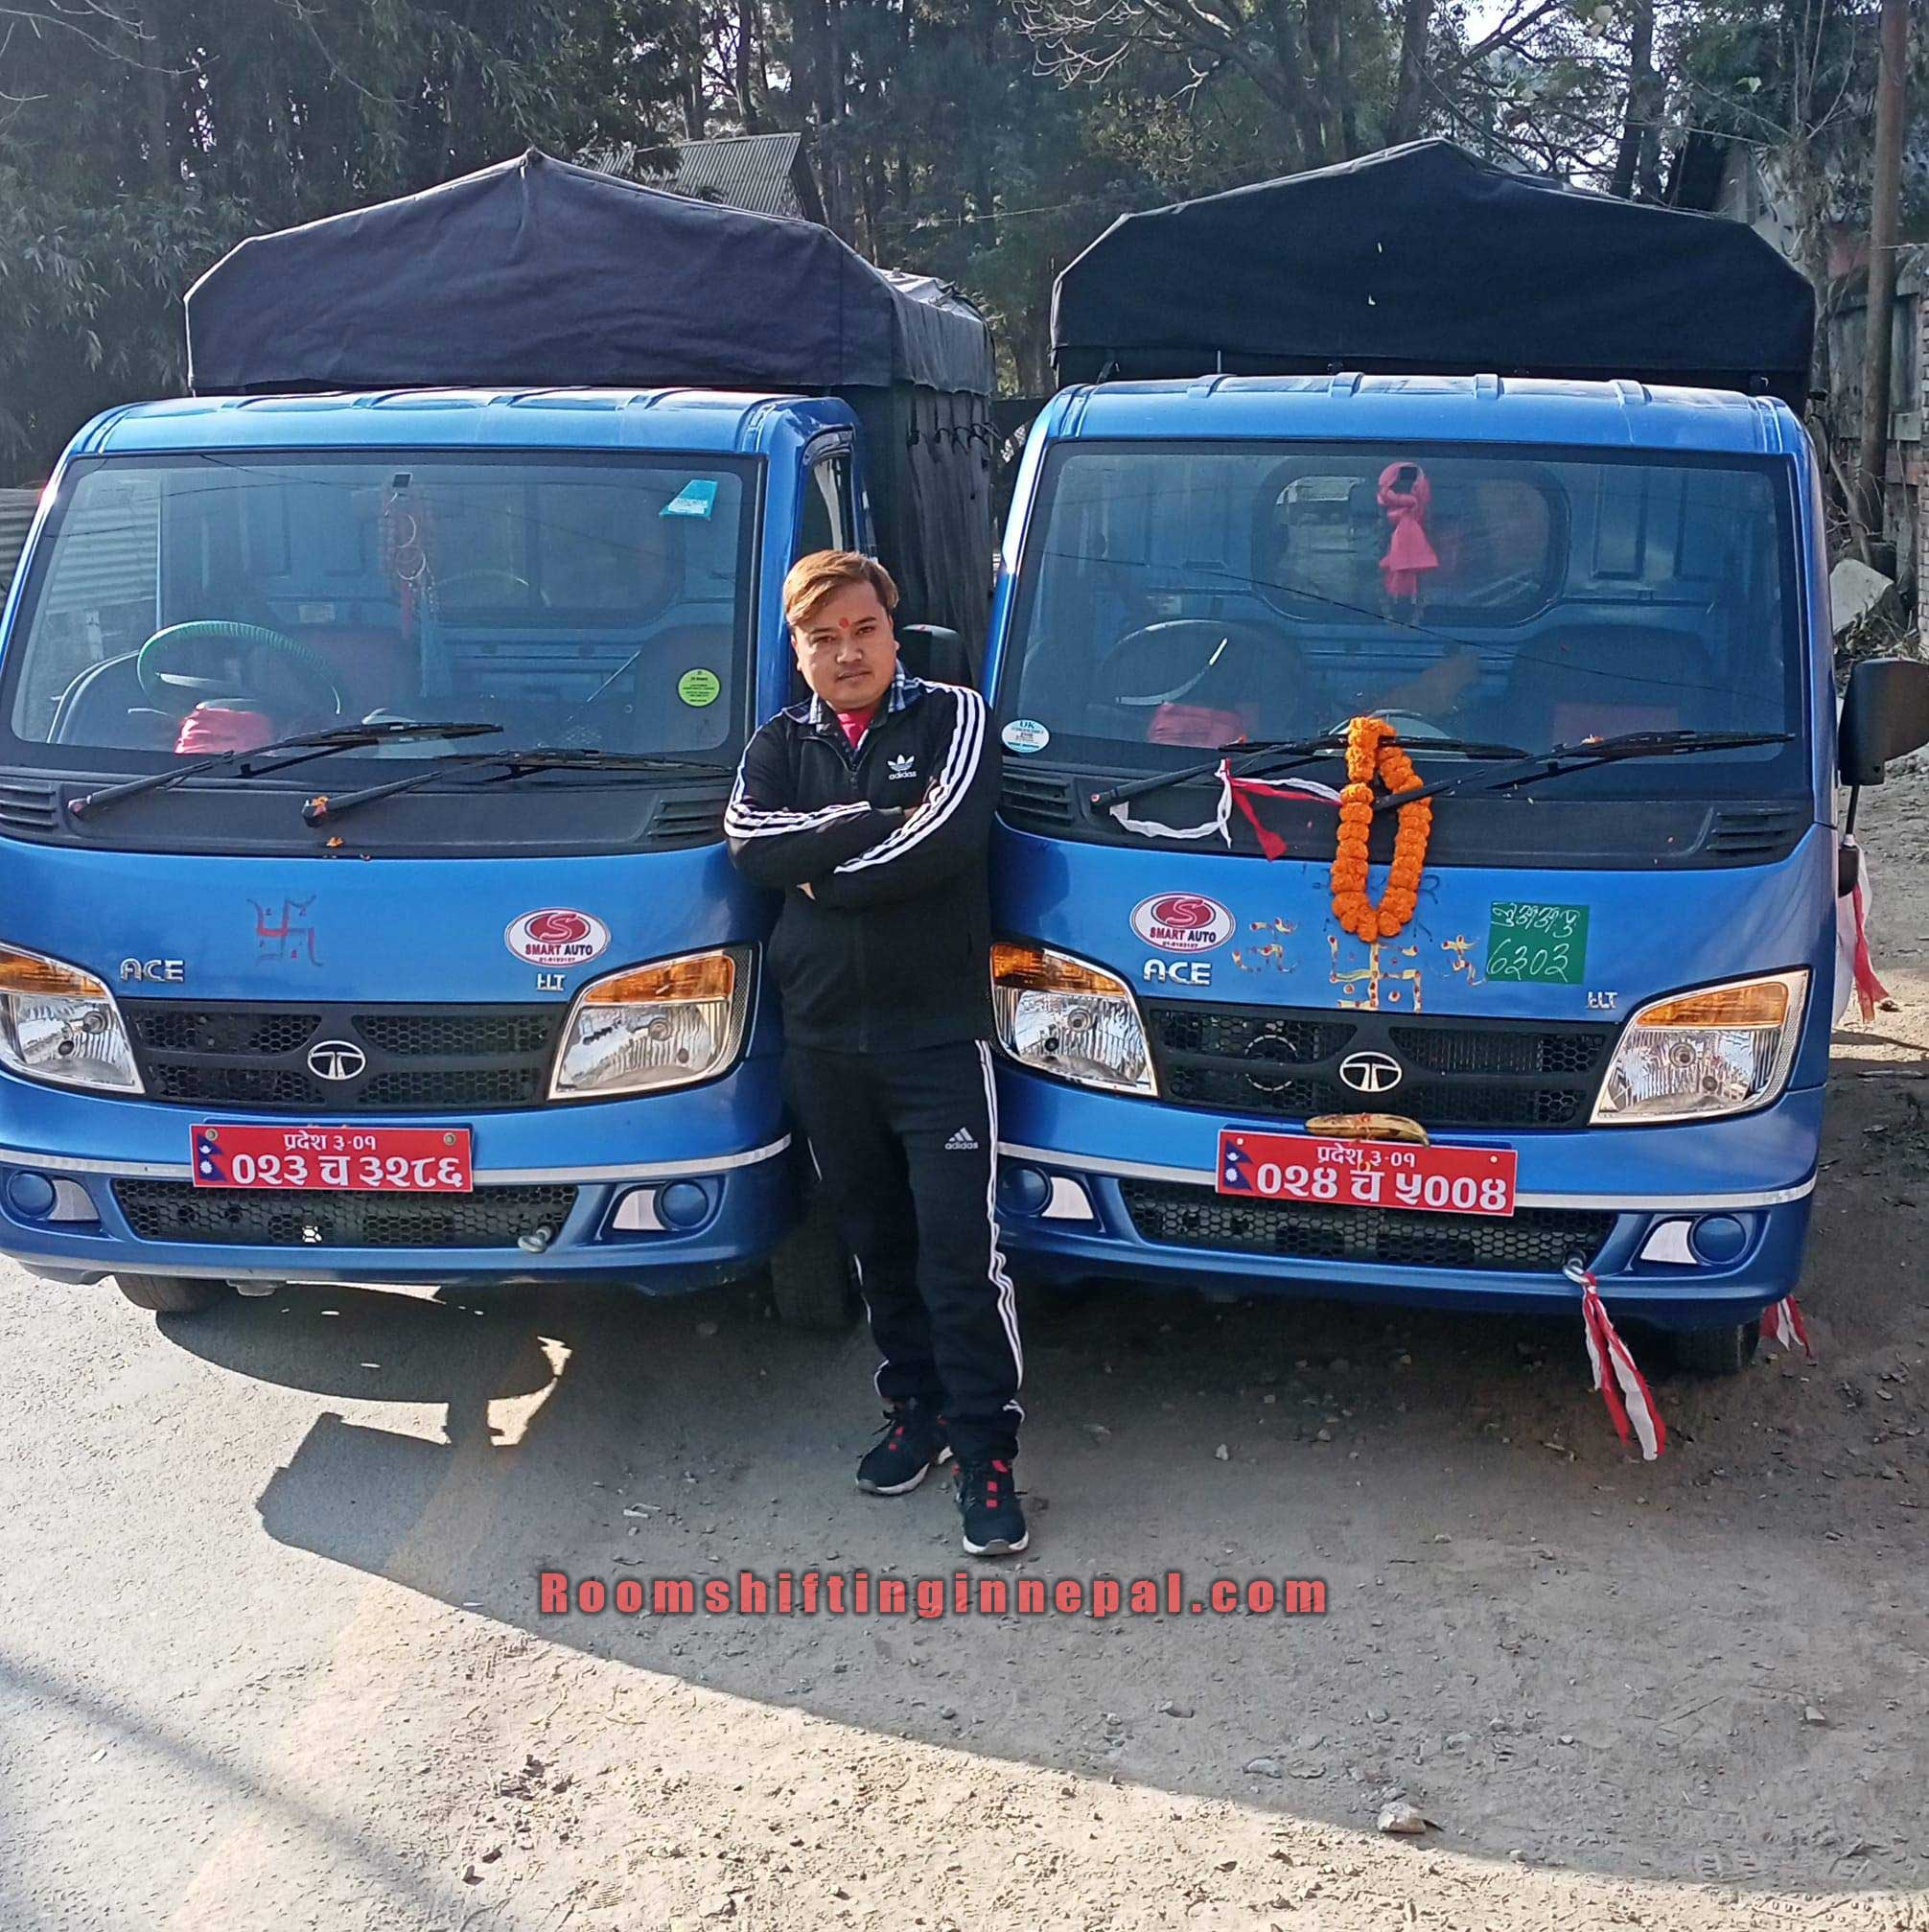 room shift service in nepal